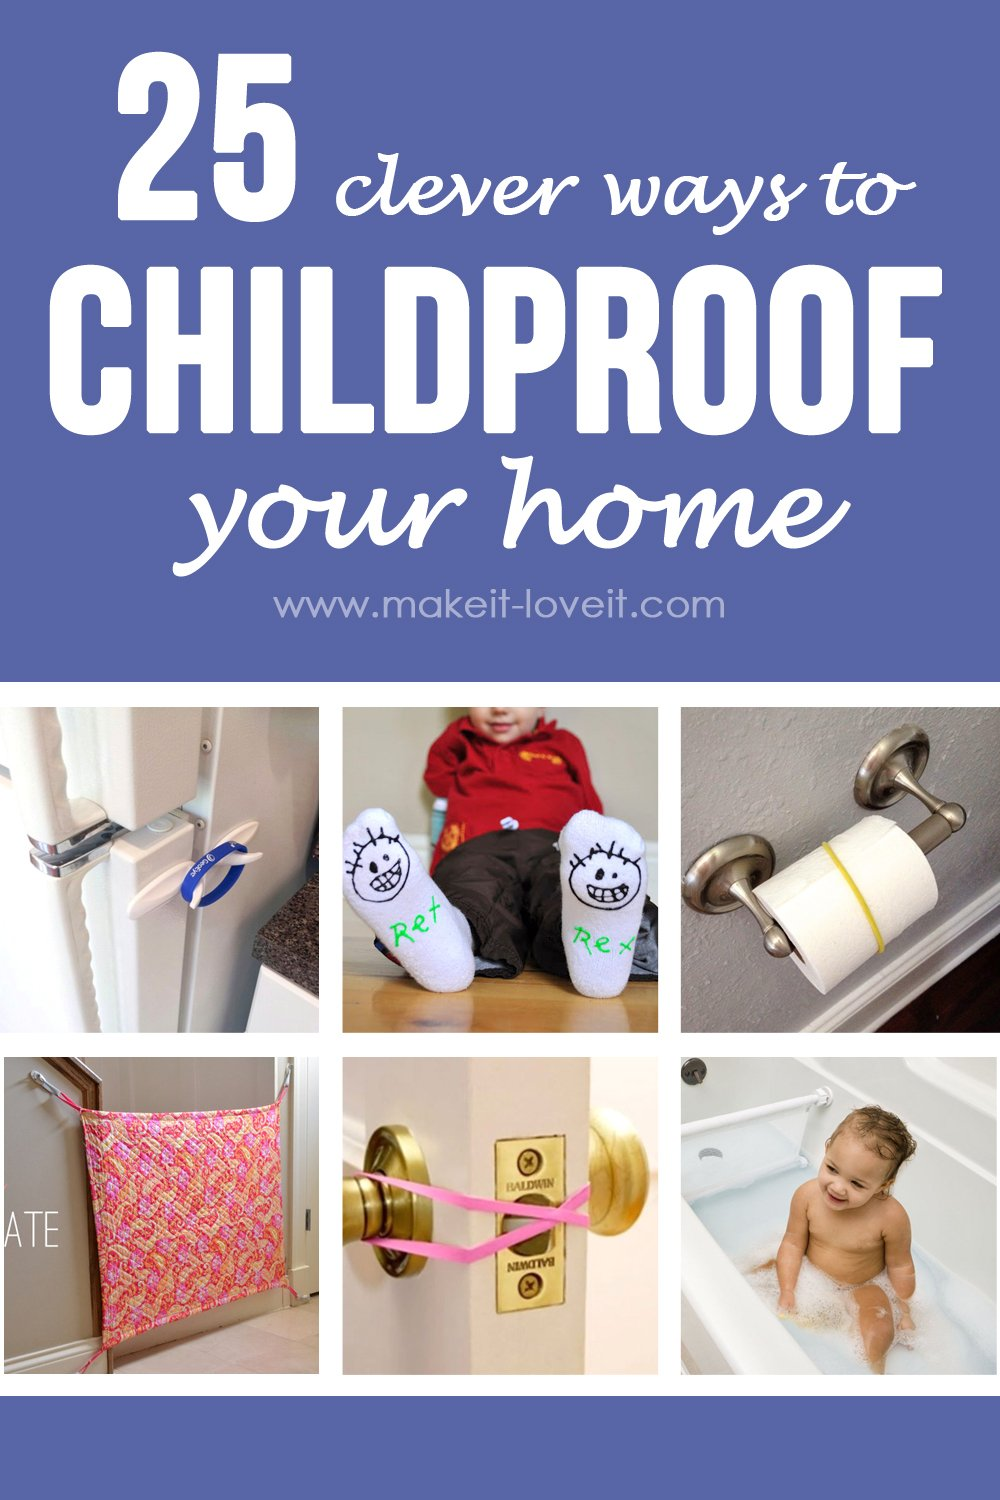 25 clever ways to childproof your home (…plus a little update on our table)